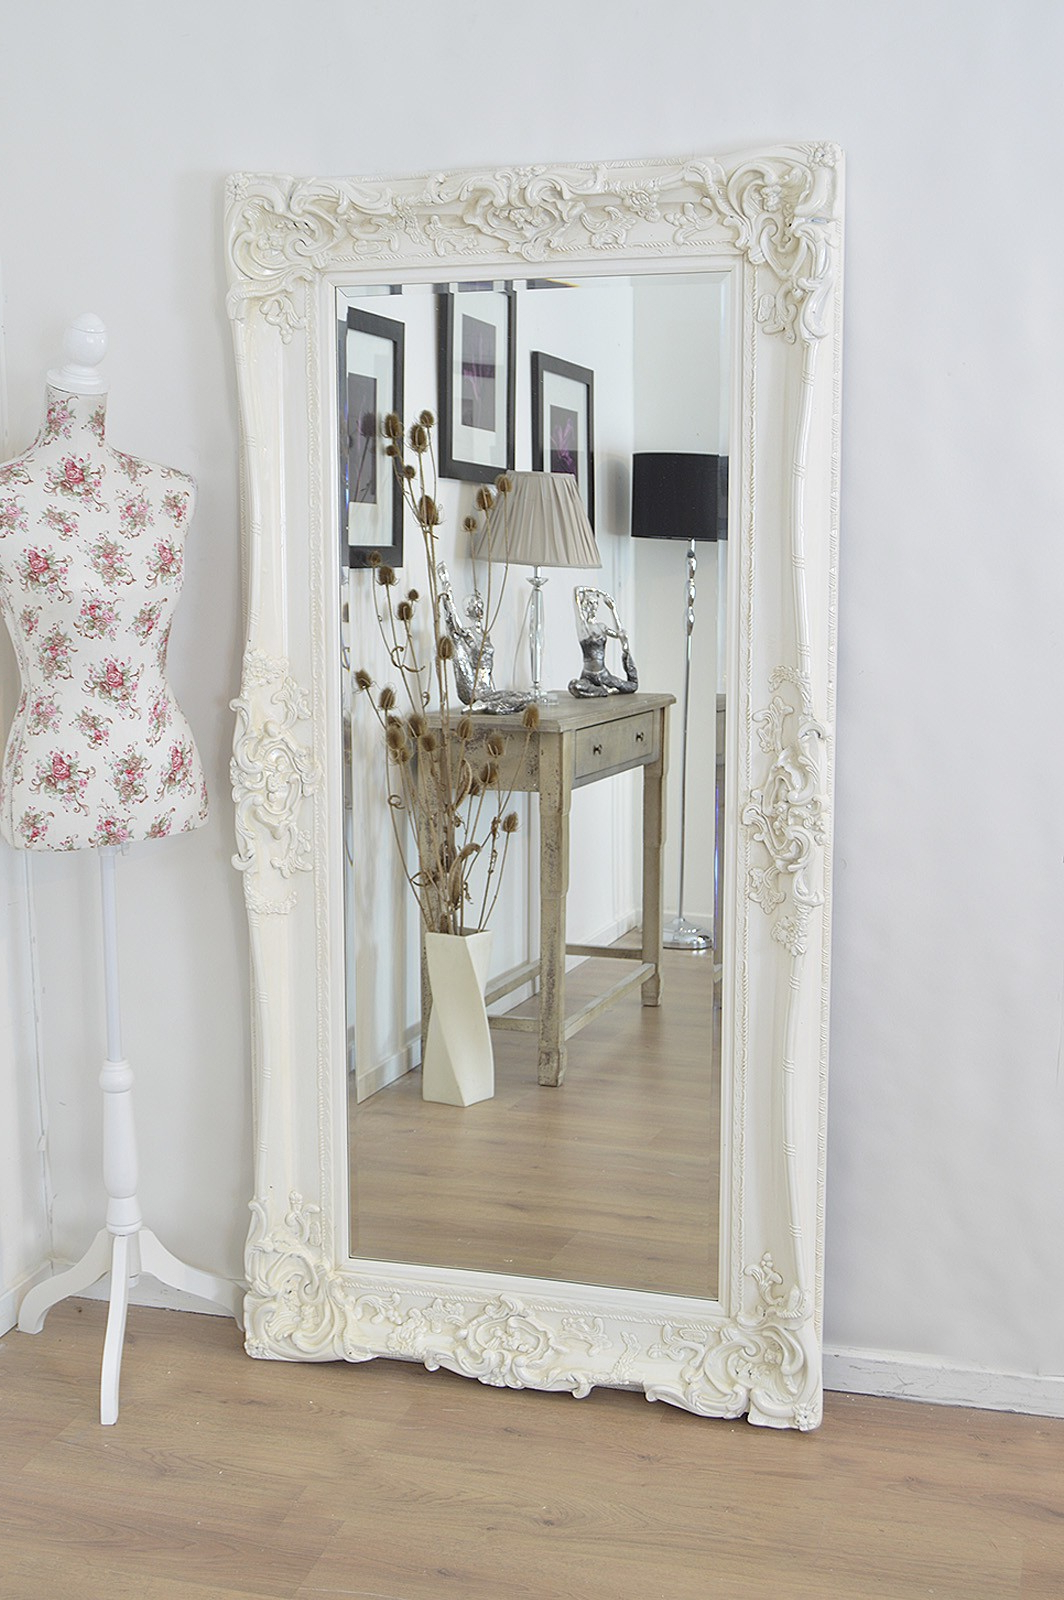 Decorating: Fashionable Shabby Chic Mirror For Home Decor With Current White Shabby Chic Wall Mirrors (View 7 of 20)